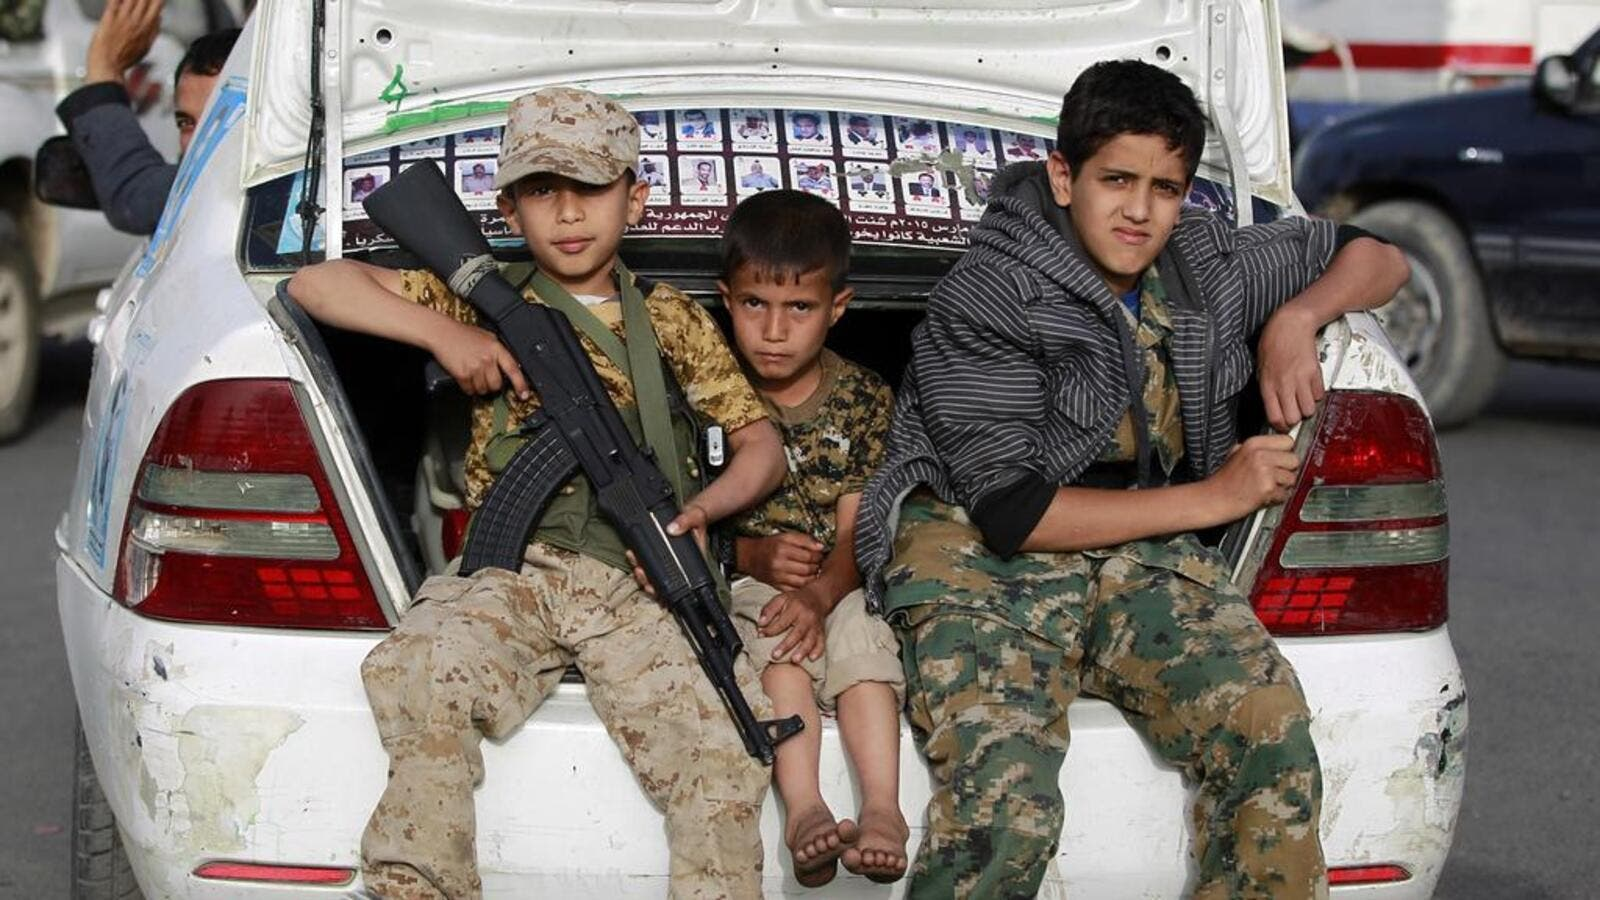 child soldiers in Yemen fighting for the Iranian-backed Houthis. (AFP/ File Photo)